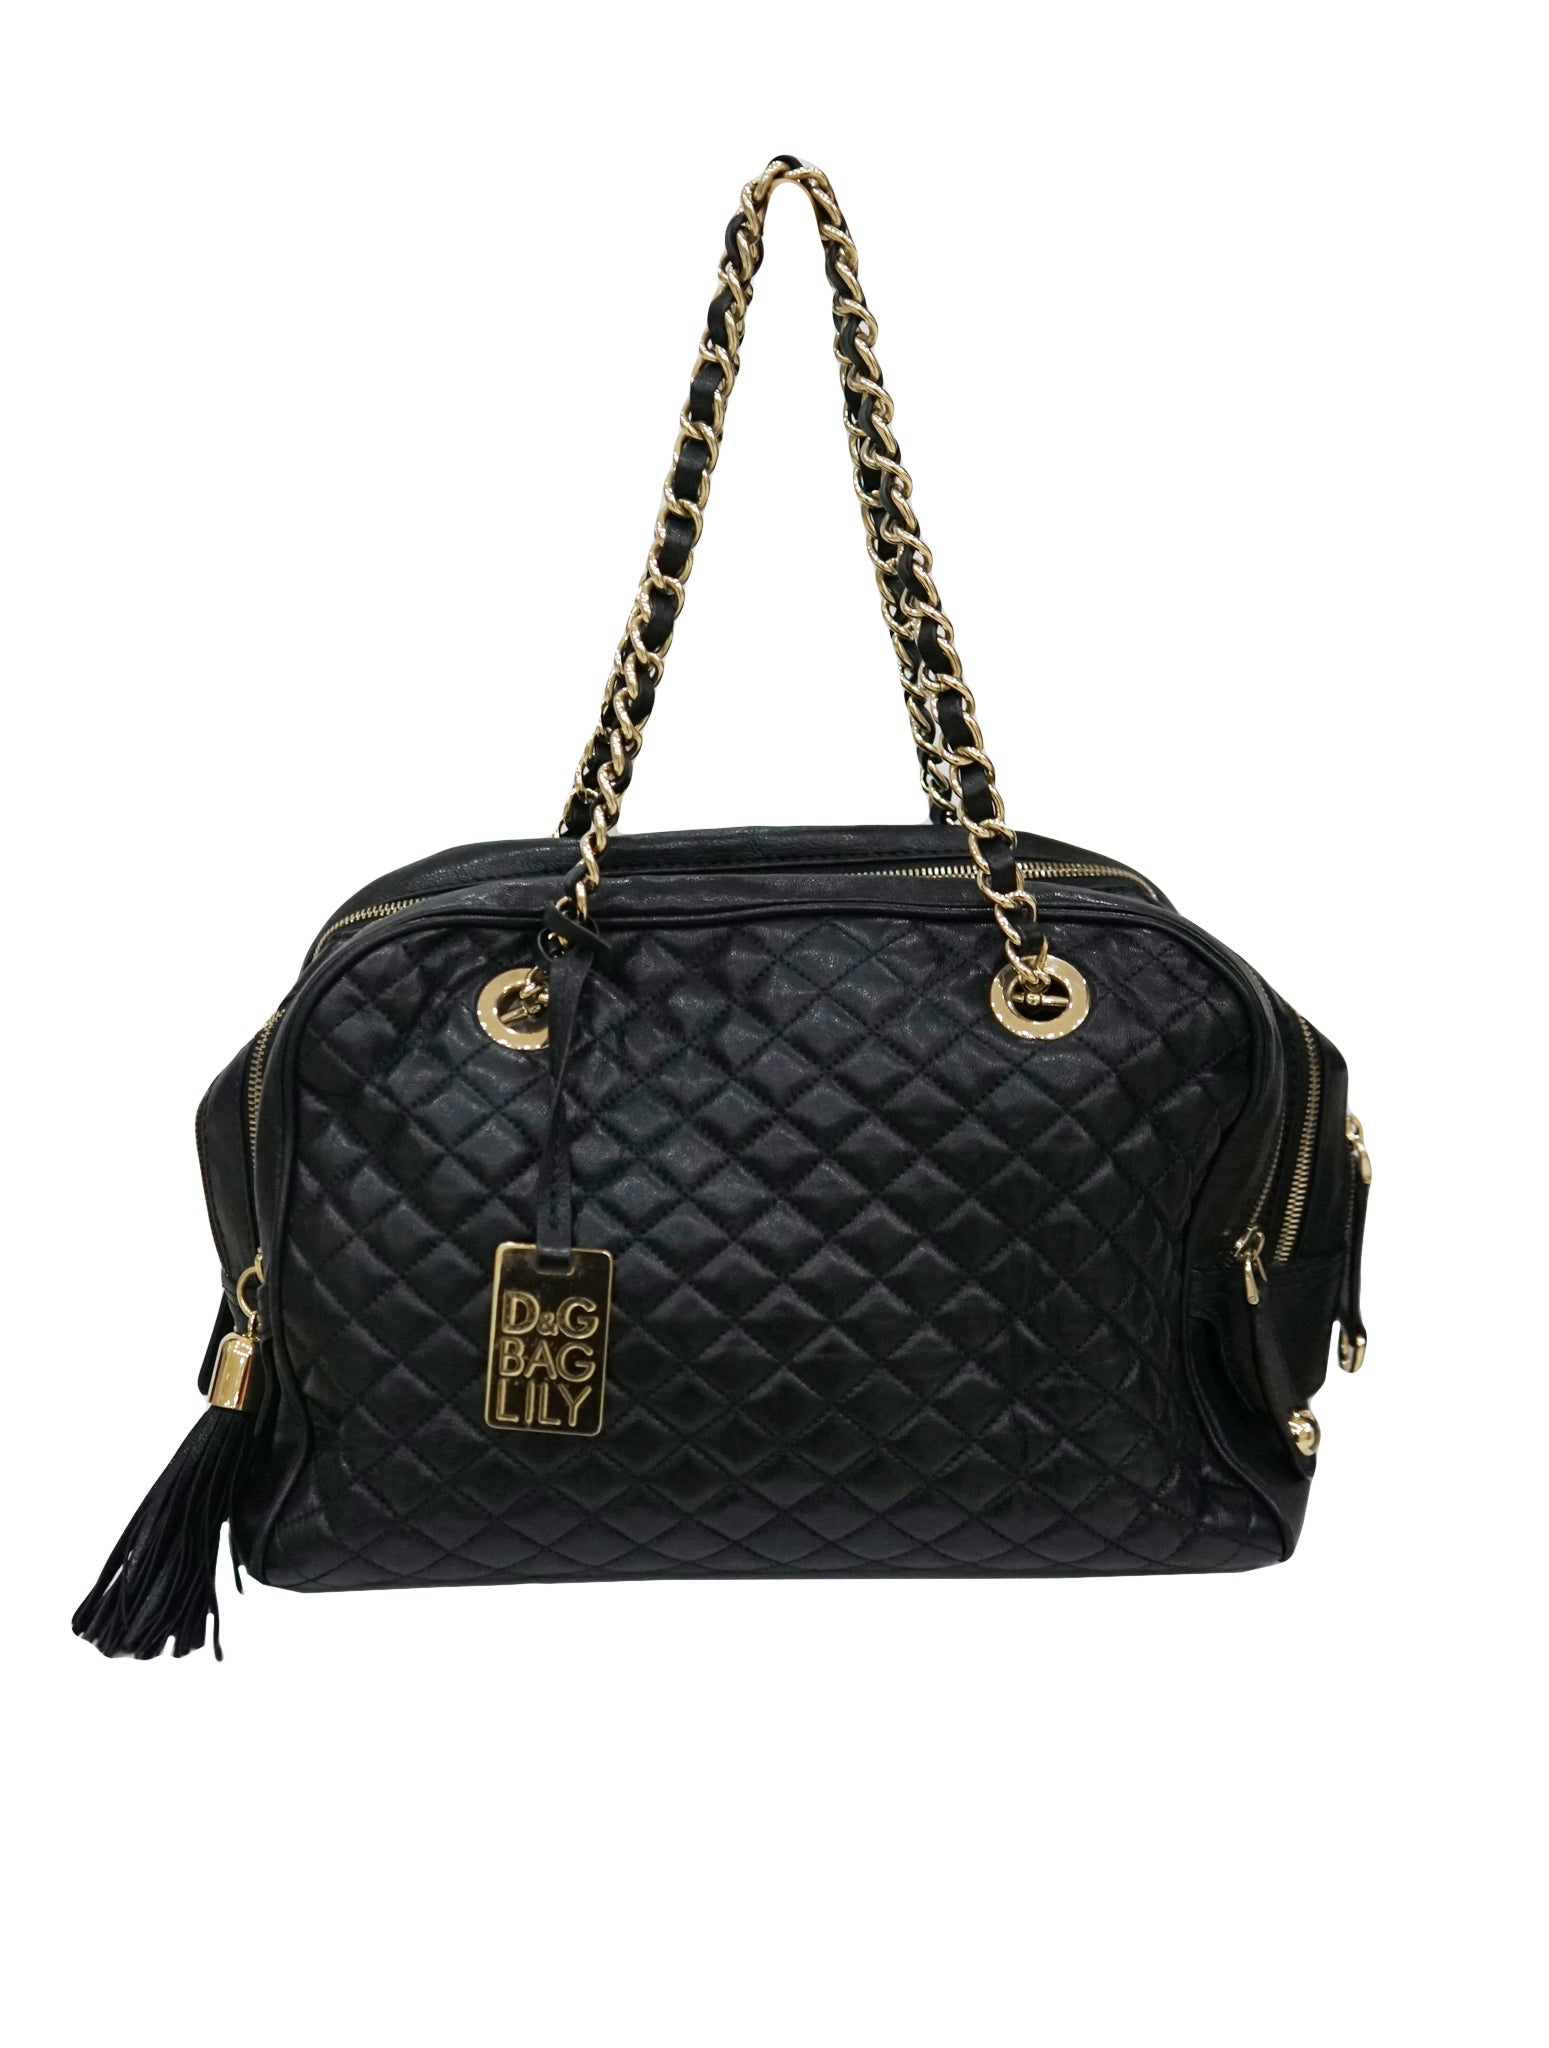 DOLCE   GABBANA LILY BLACK QUILTED BAG – Kidsstyleforless 4f7080fad0